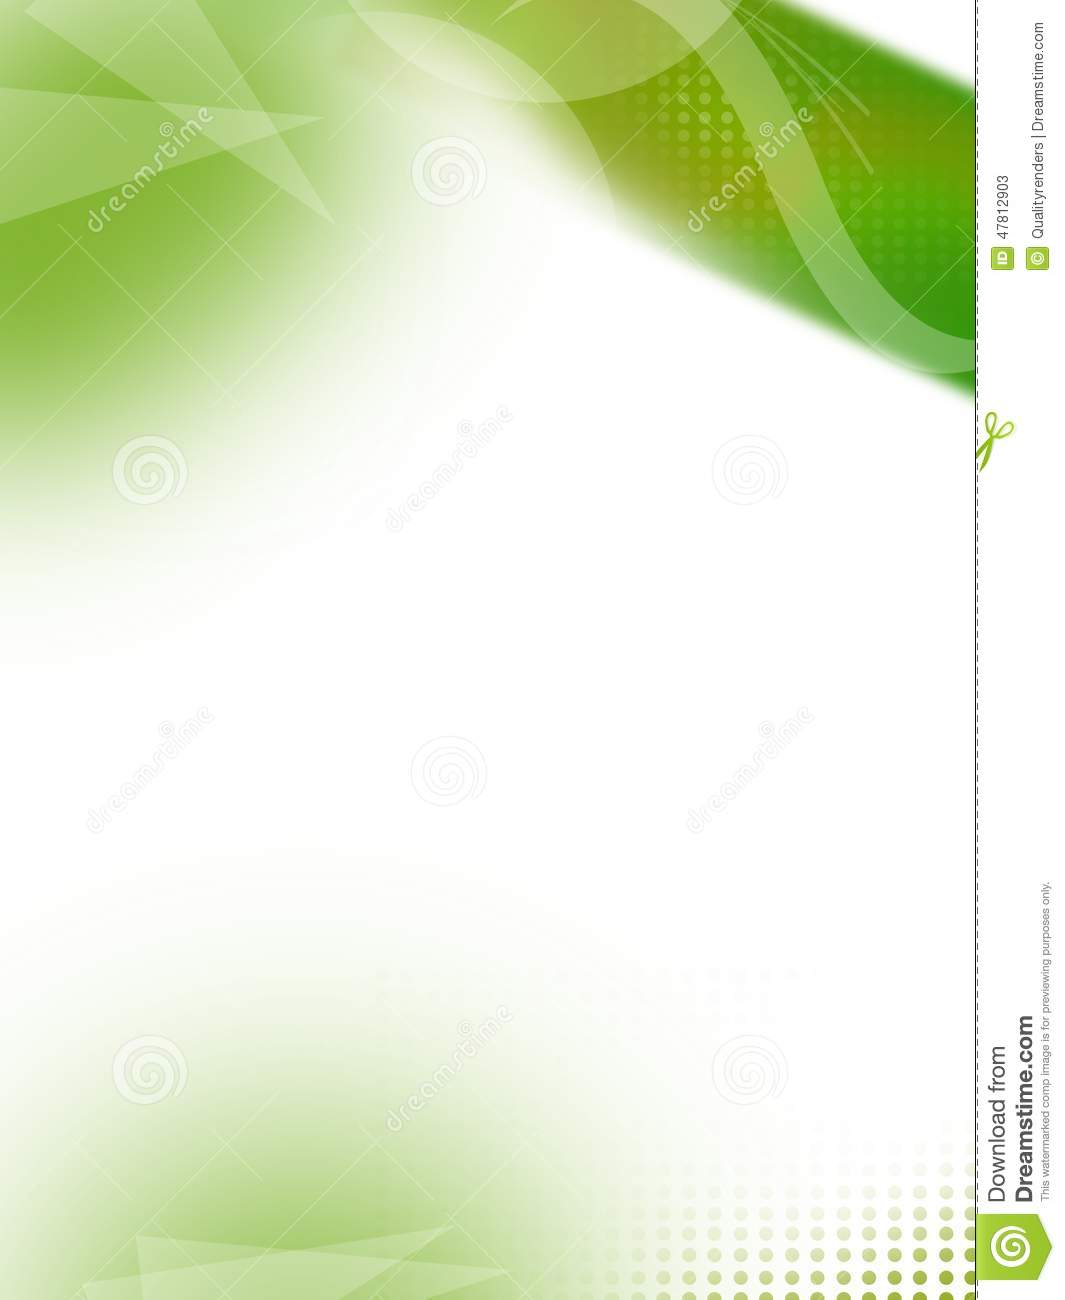 green flyer backgrounds - photo #1